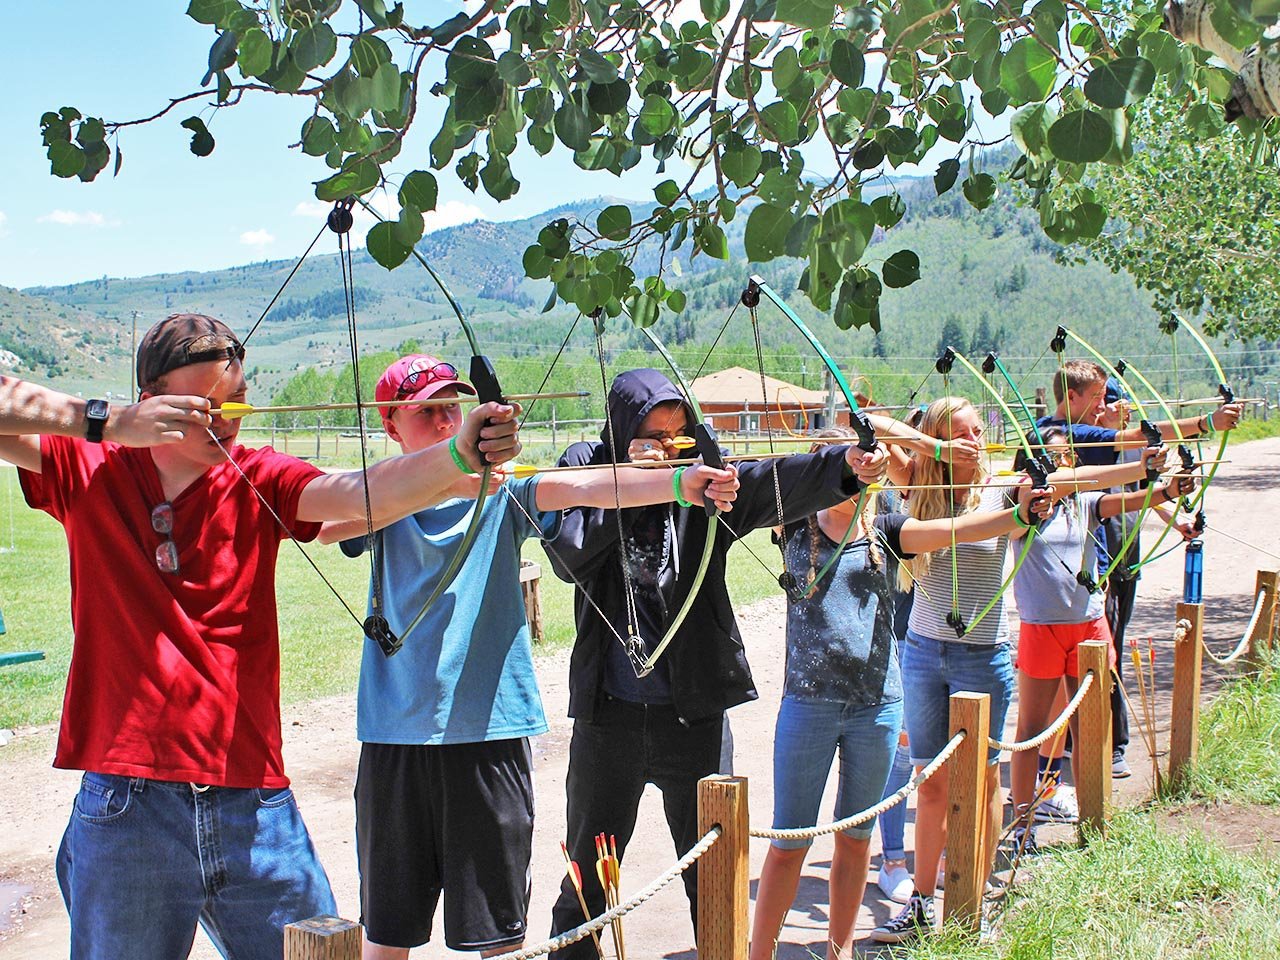 These boys all aim and prepare to fire off arrows at the same time at the Archery activity.